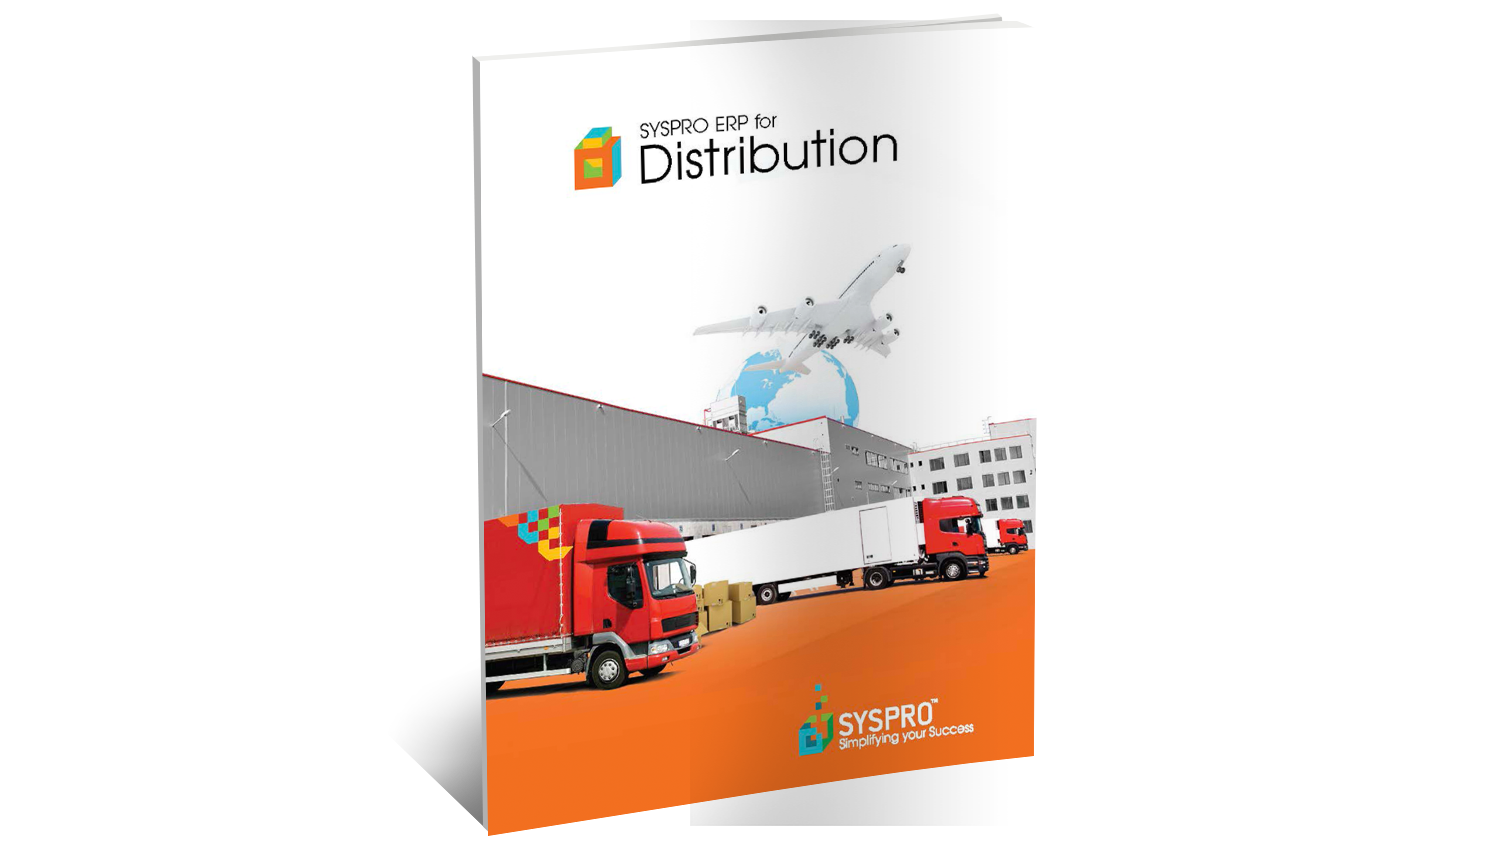 SYSPRO ERP for Distribution Brochure